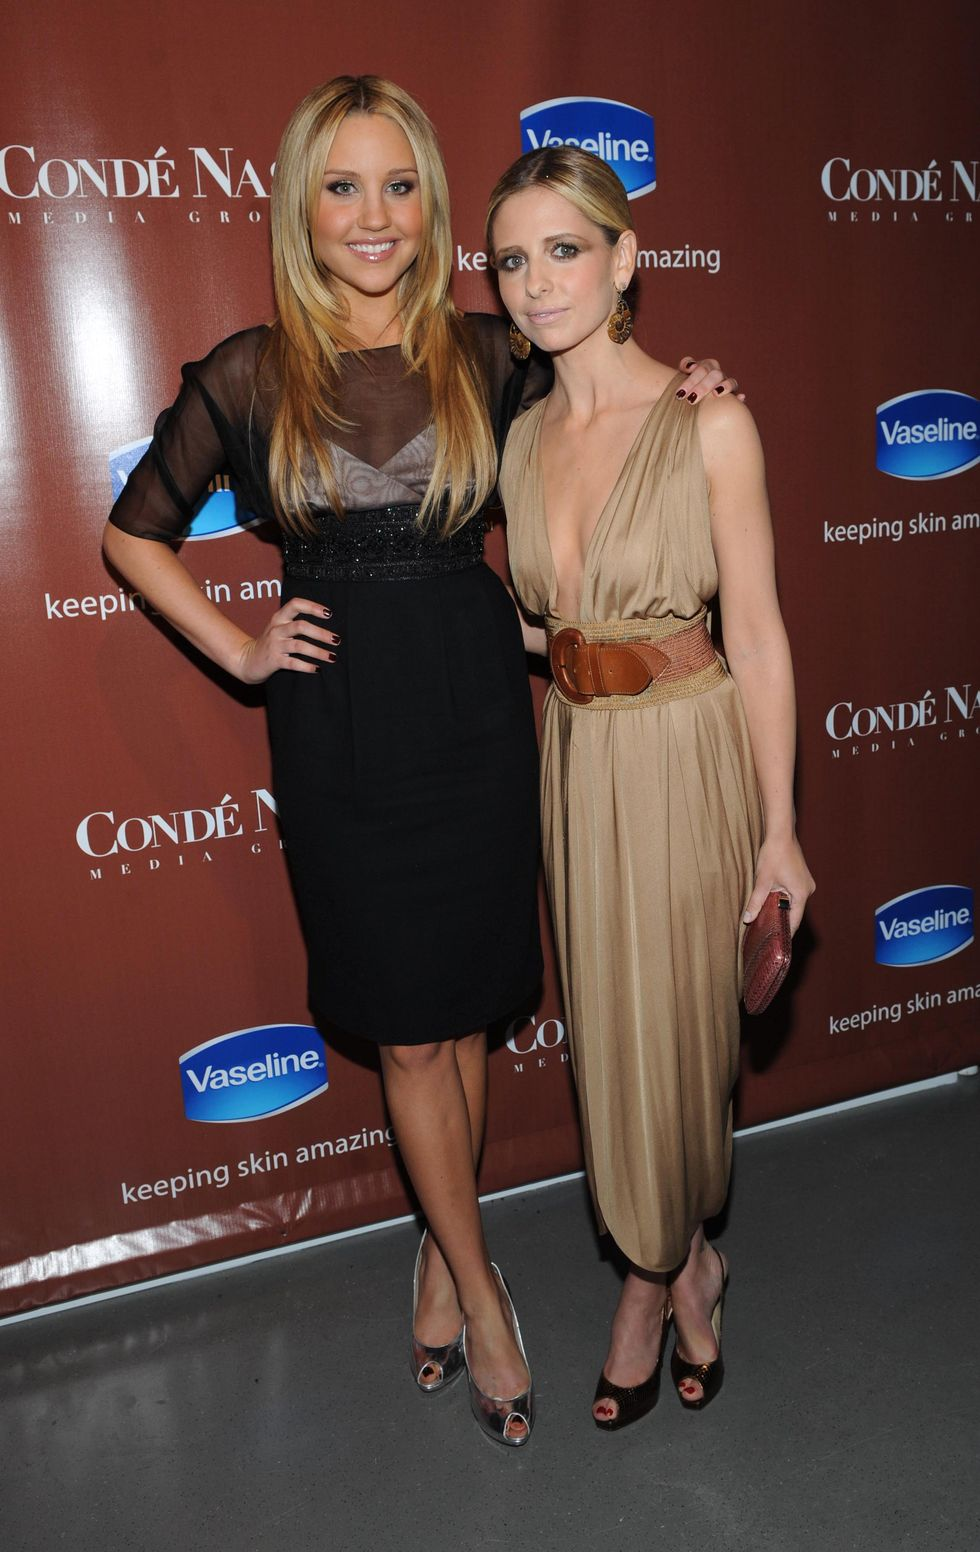 amanda-bynes-and-sarah-michelle-gellar-skin-is-amazing-exhibit-in-new-york-city-01